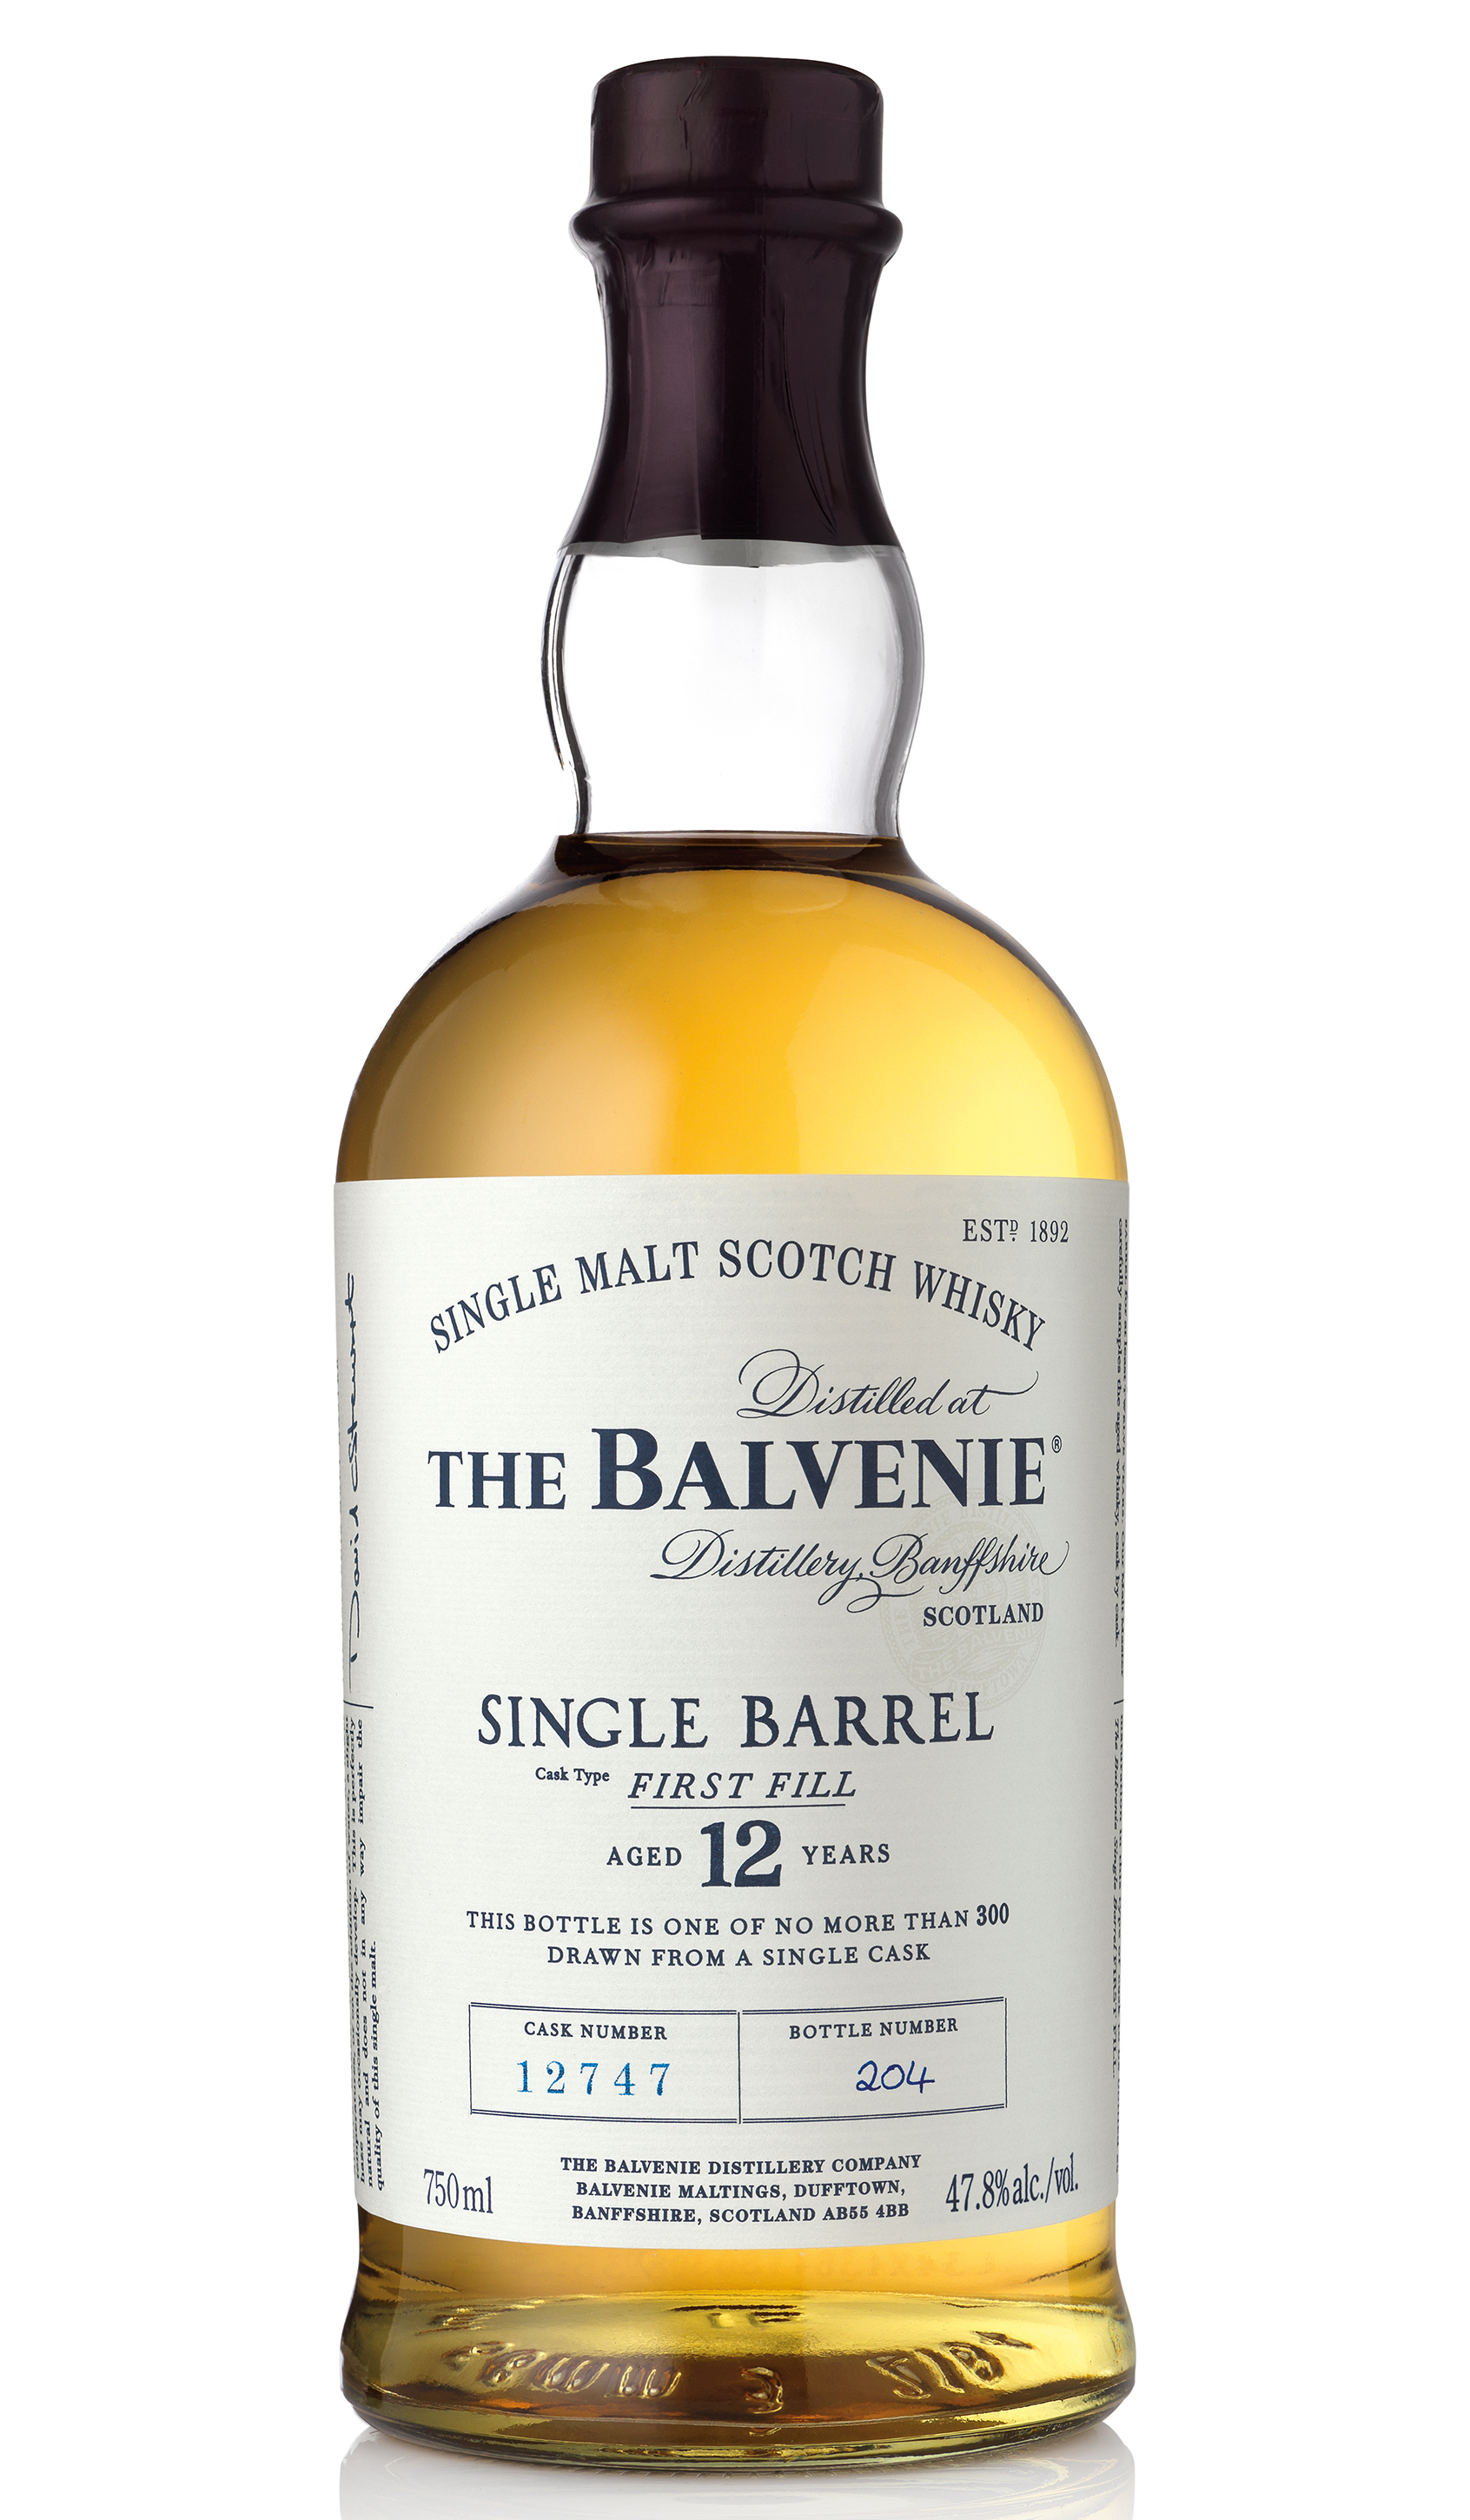 Single Barrel First Fill 12 Years,